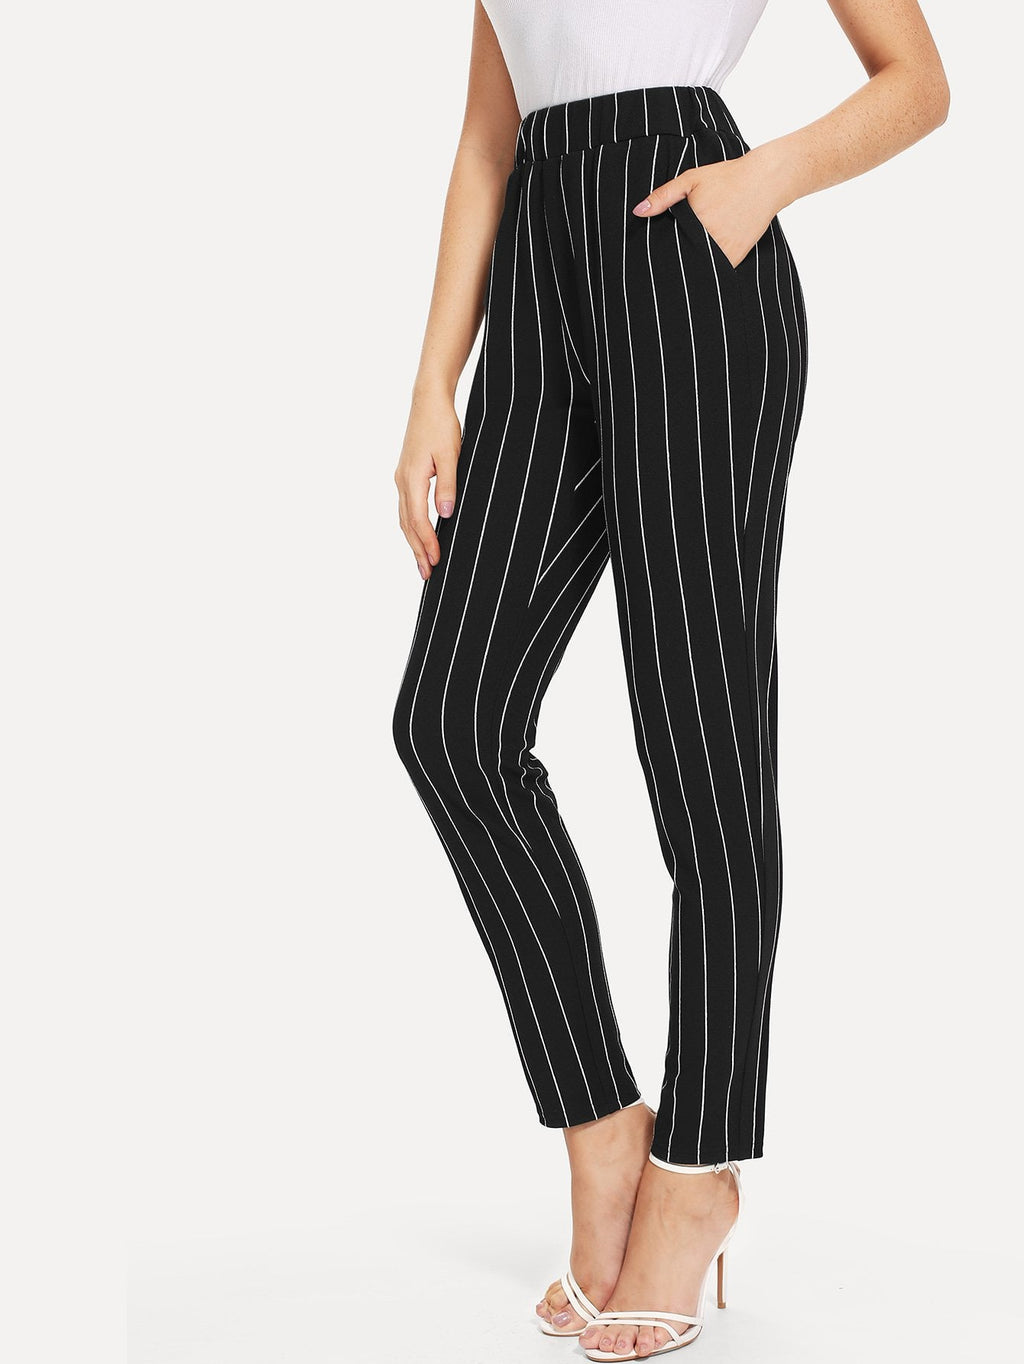 Dress Pants For Women - Elastic Waist Pinstripe Cigarette Pants